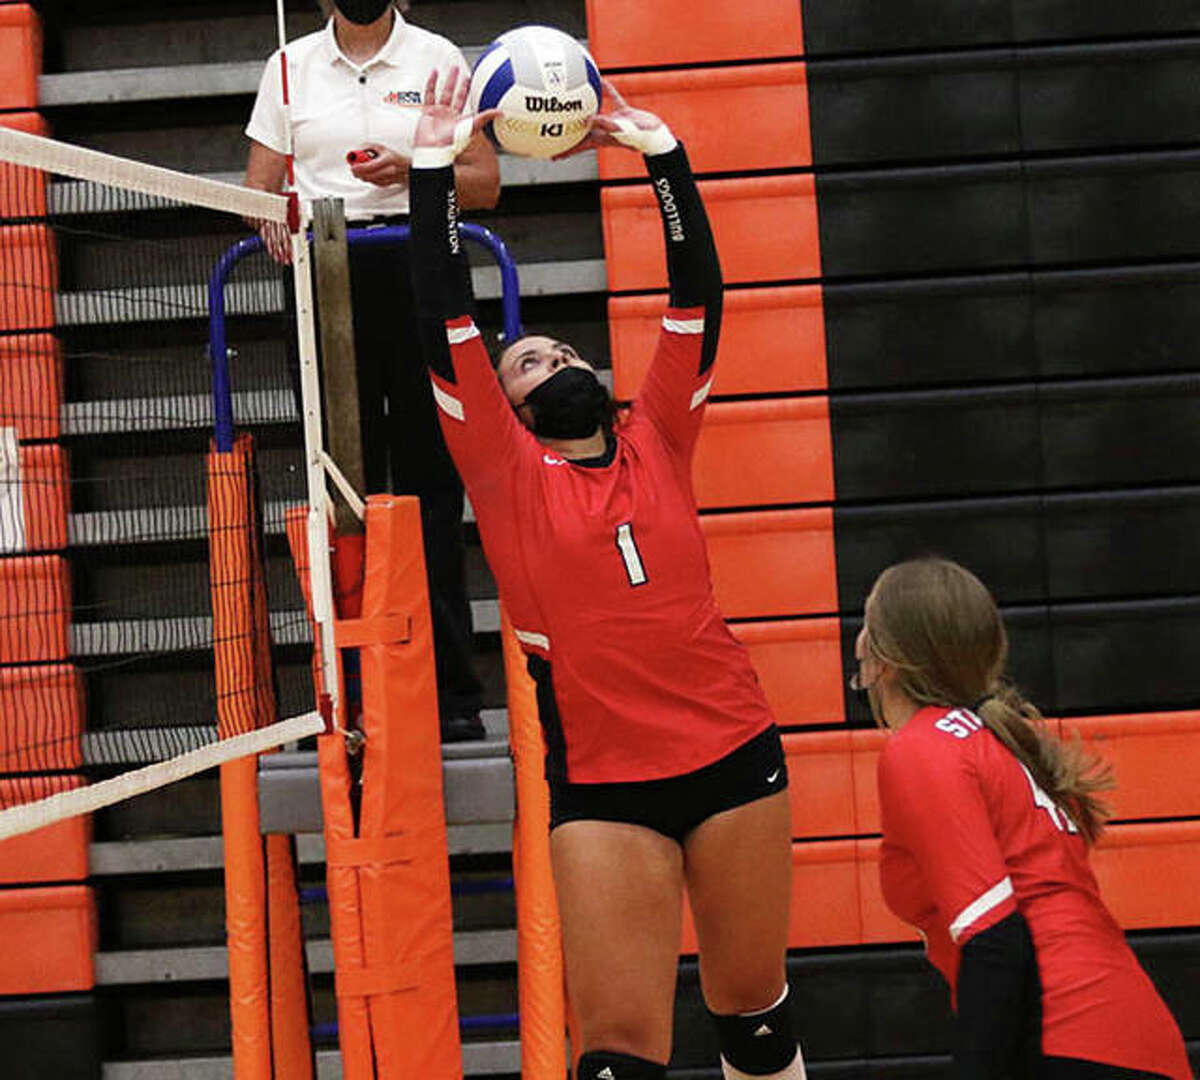 Staunton's Savannah Billings (1), shown setting while teammate Kennedy Legendre goes to the net in a match at the Edwardsville Tourney on Sept. 3, had 21 assists in the Bulldogs' two-set win over Auburn on Tuesday in Staunton.